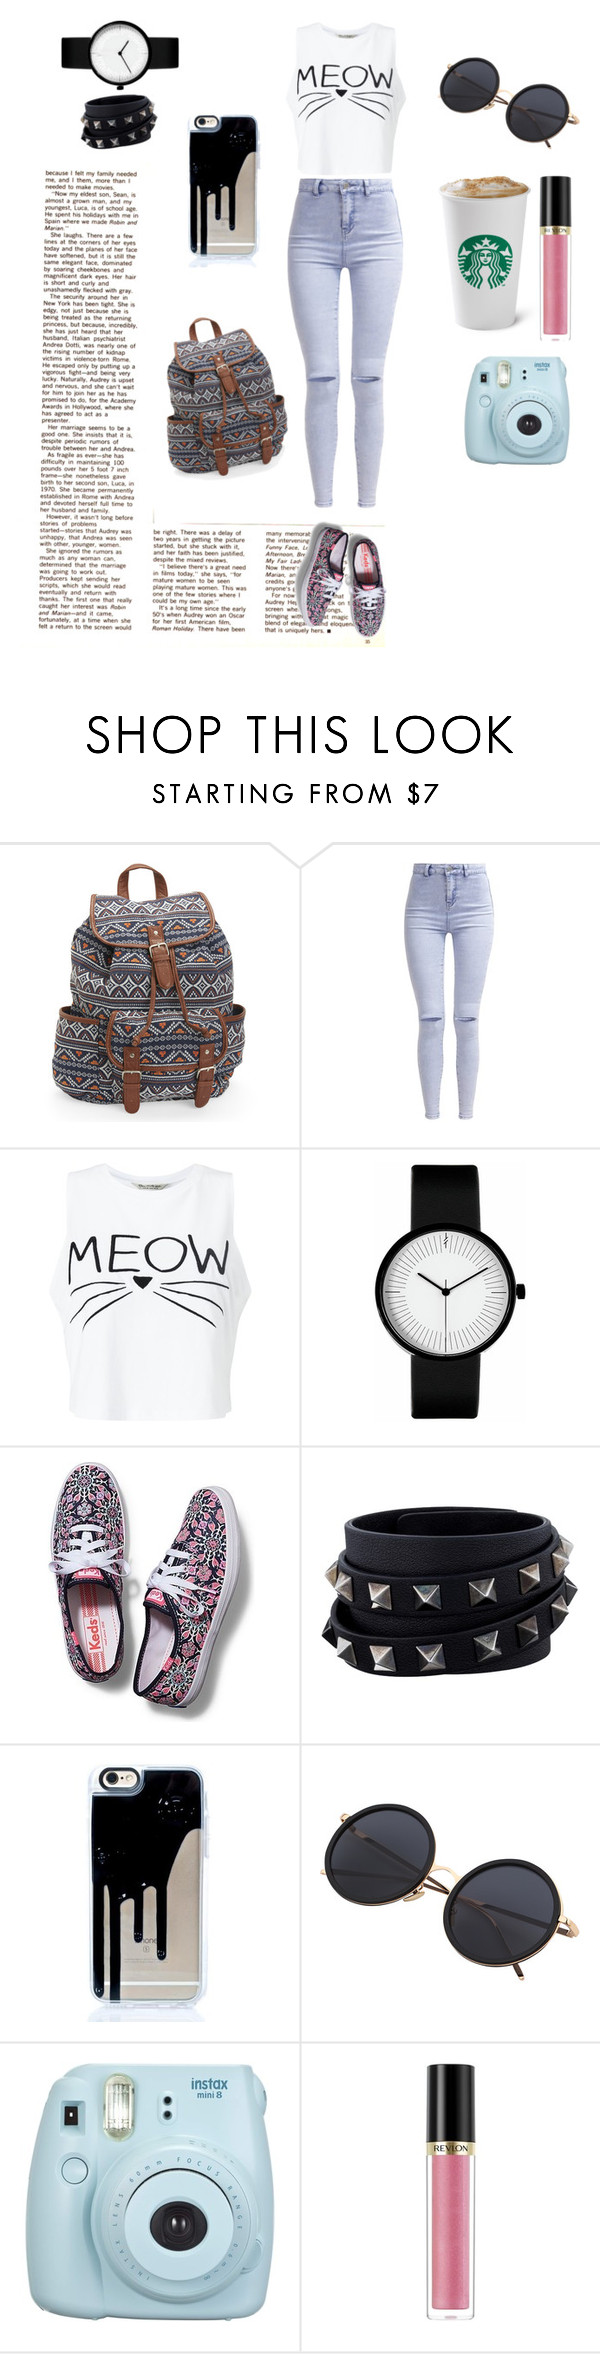 """Untitled #33"" by aishaamer ❤ liked on Polyvore featuring Aéropostale, New Look, Miss Selfridge, Keds, Valentino, Fujifilm and Revlon"